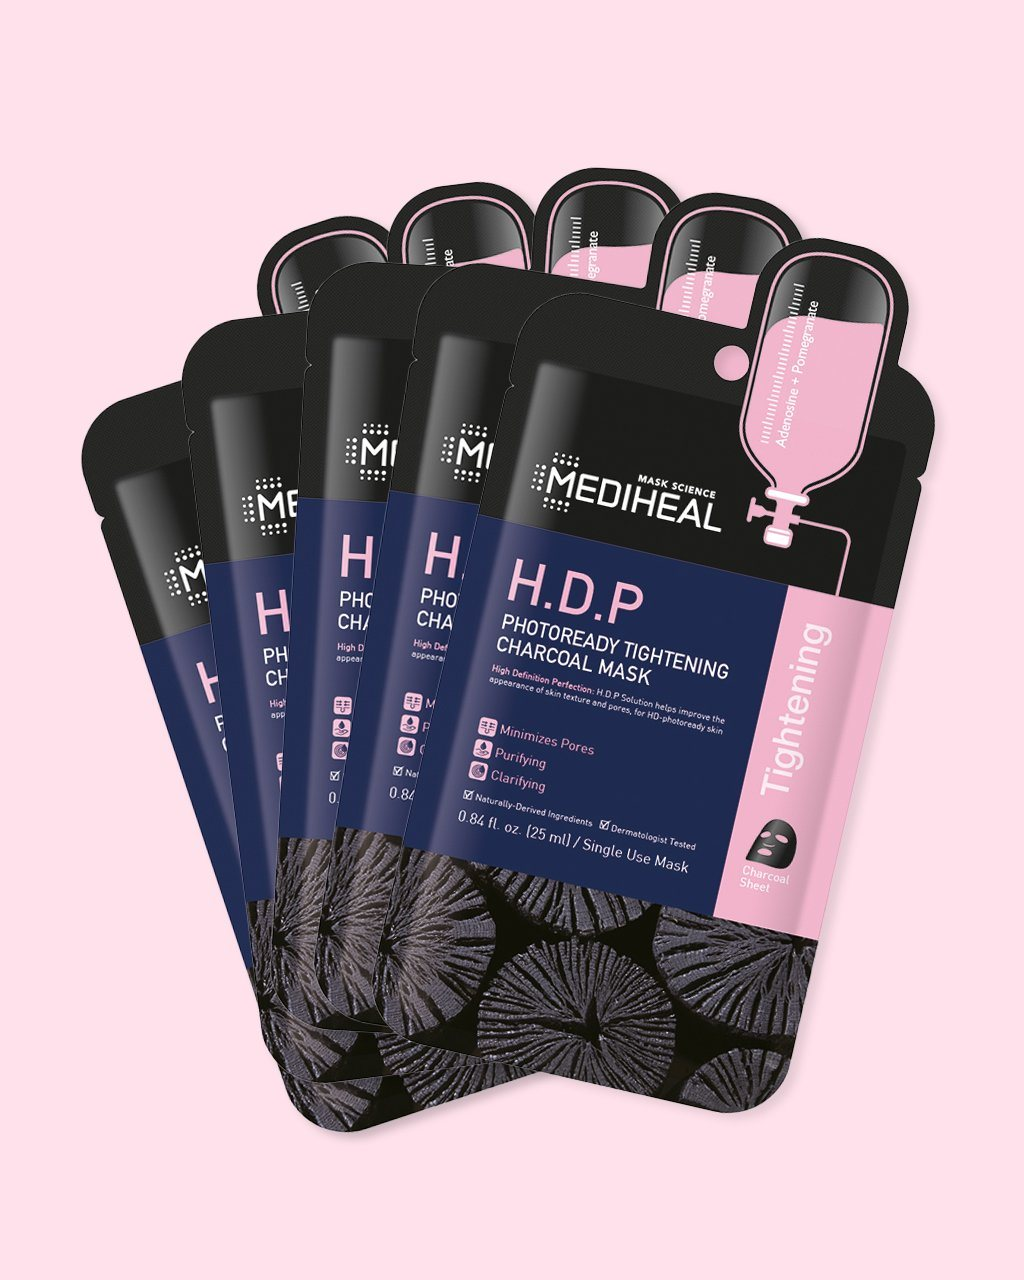 H.D.P Photoready Tightening Charcoal Mask (5 pack)